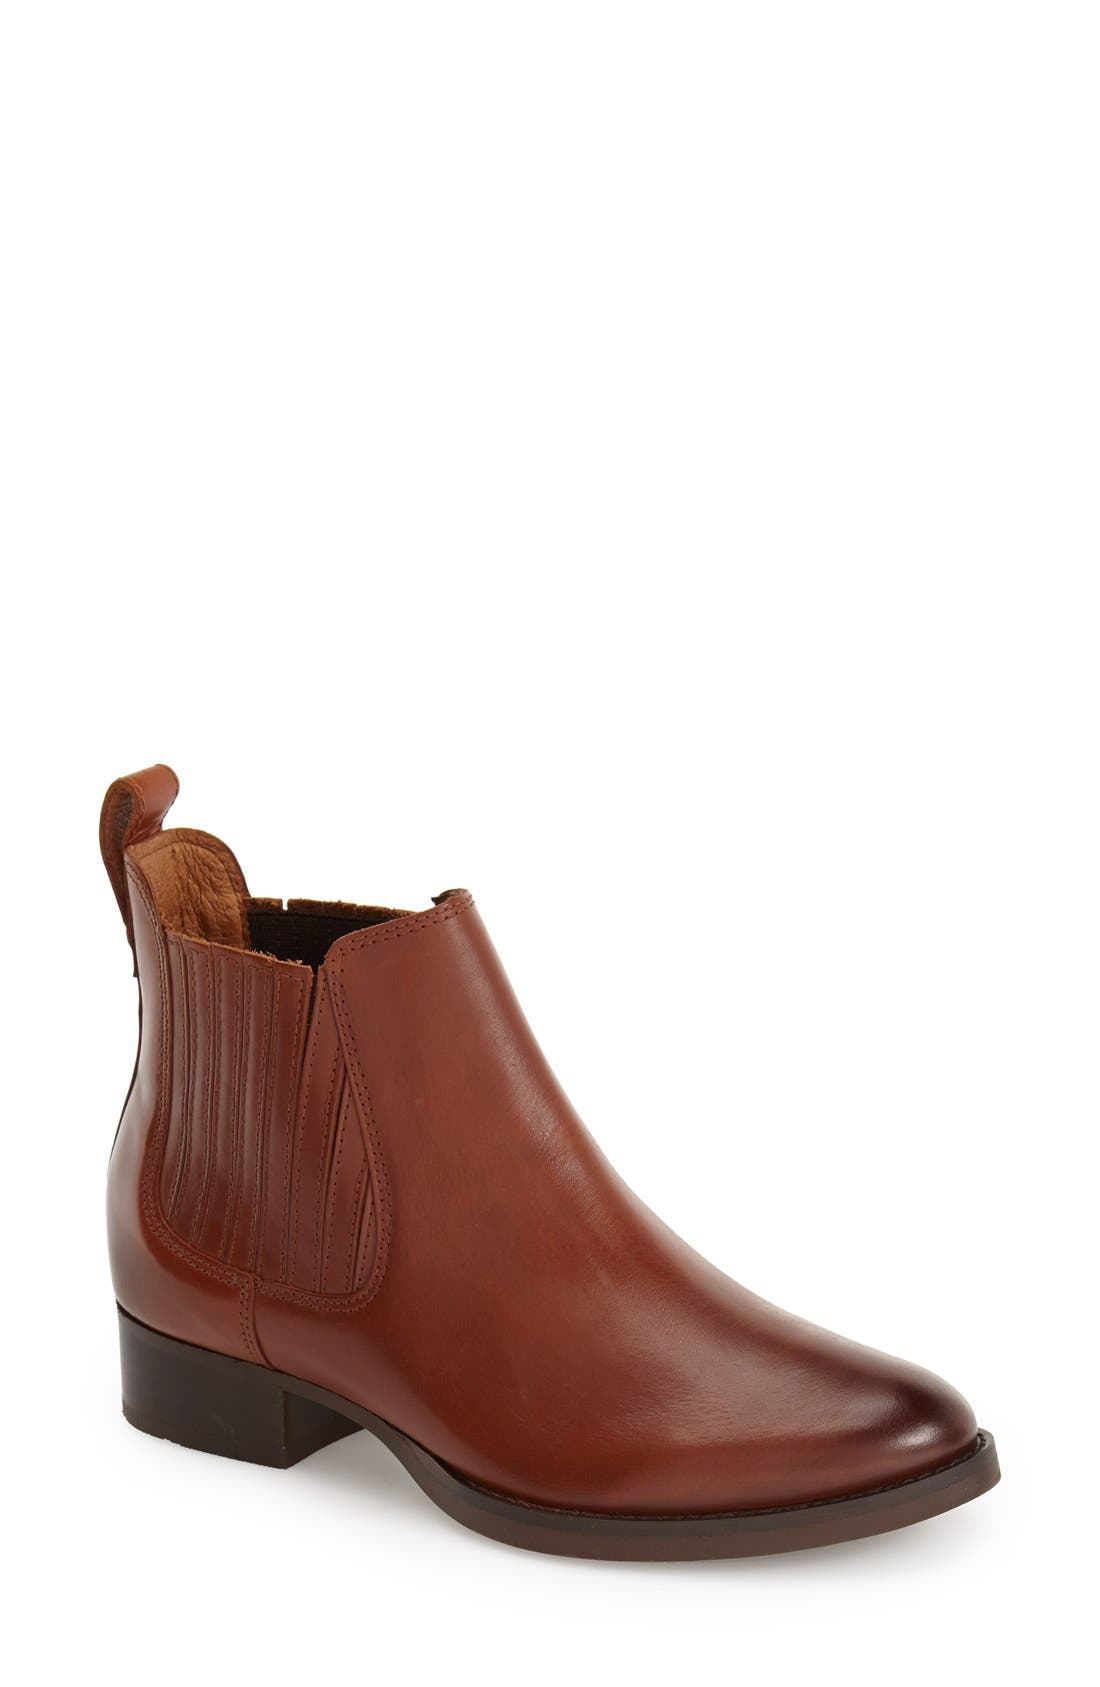 Alternate Image 1 Selected - Ariat 'Weekend' Boot (Women)